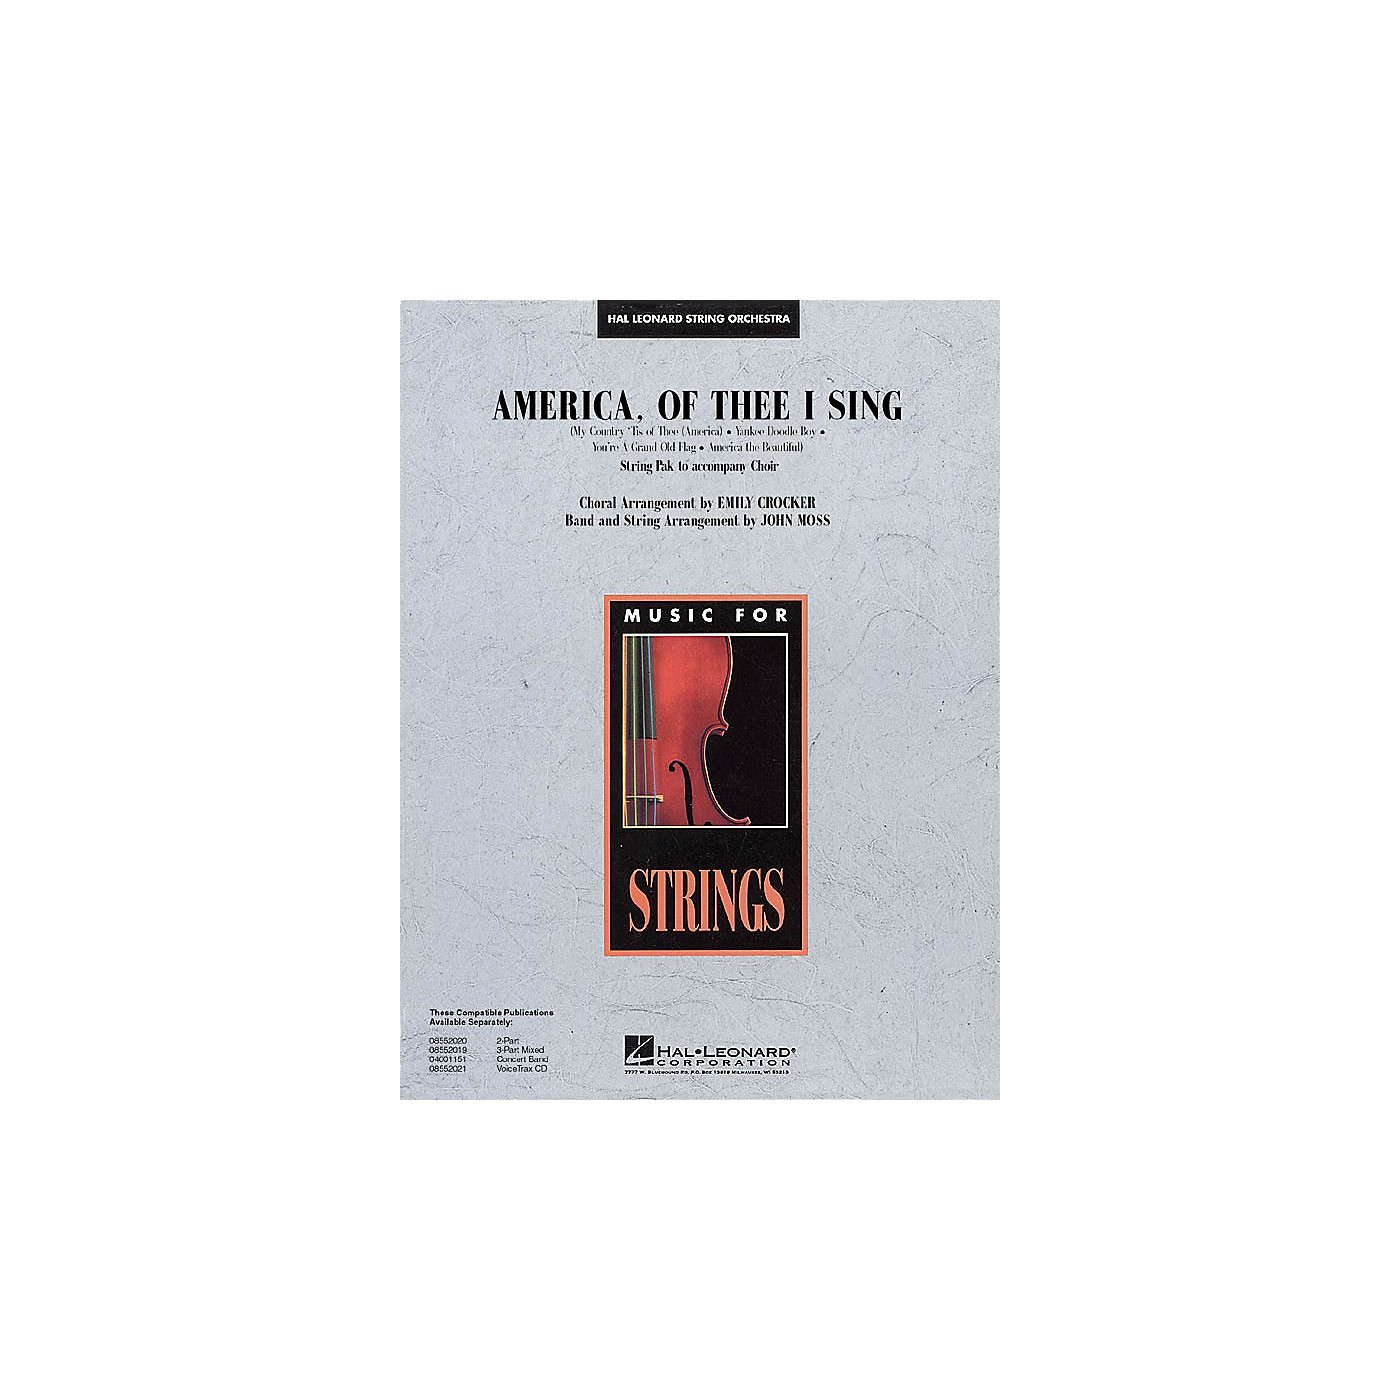 Hal Leonard America, of Thee I Sing Music for String Orchestra Series Arranged by John Moss thumbnail